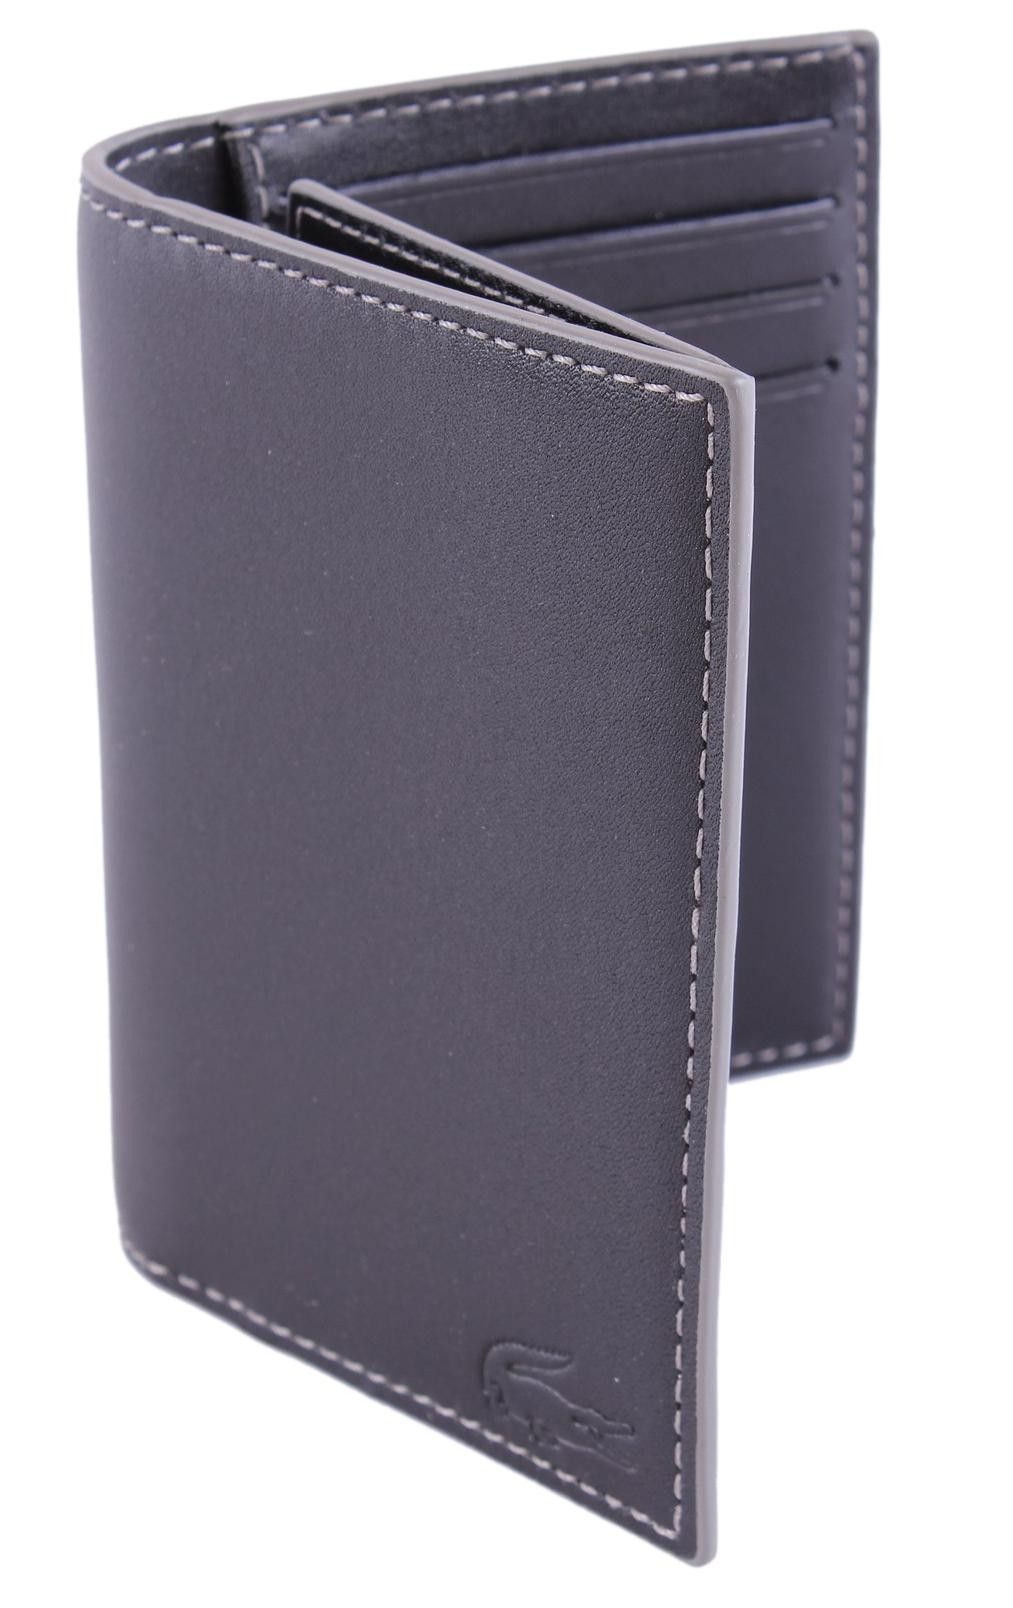 Lacoste Wallet - Black Business Card Holder #Lacoste #Mens #Wallet ...